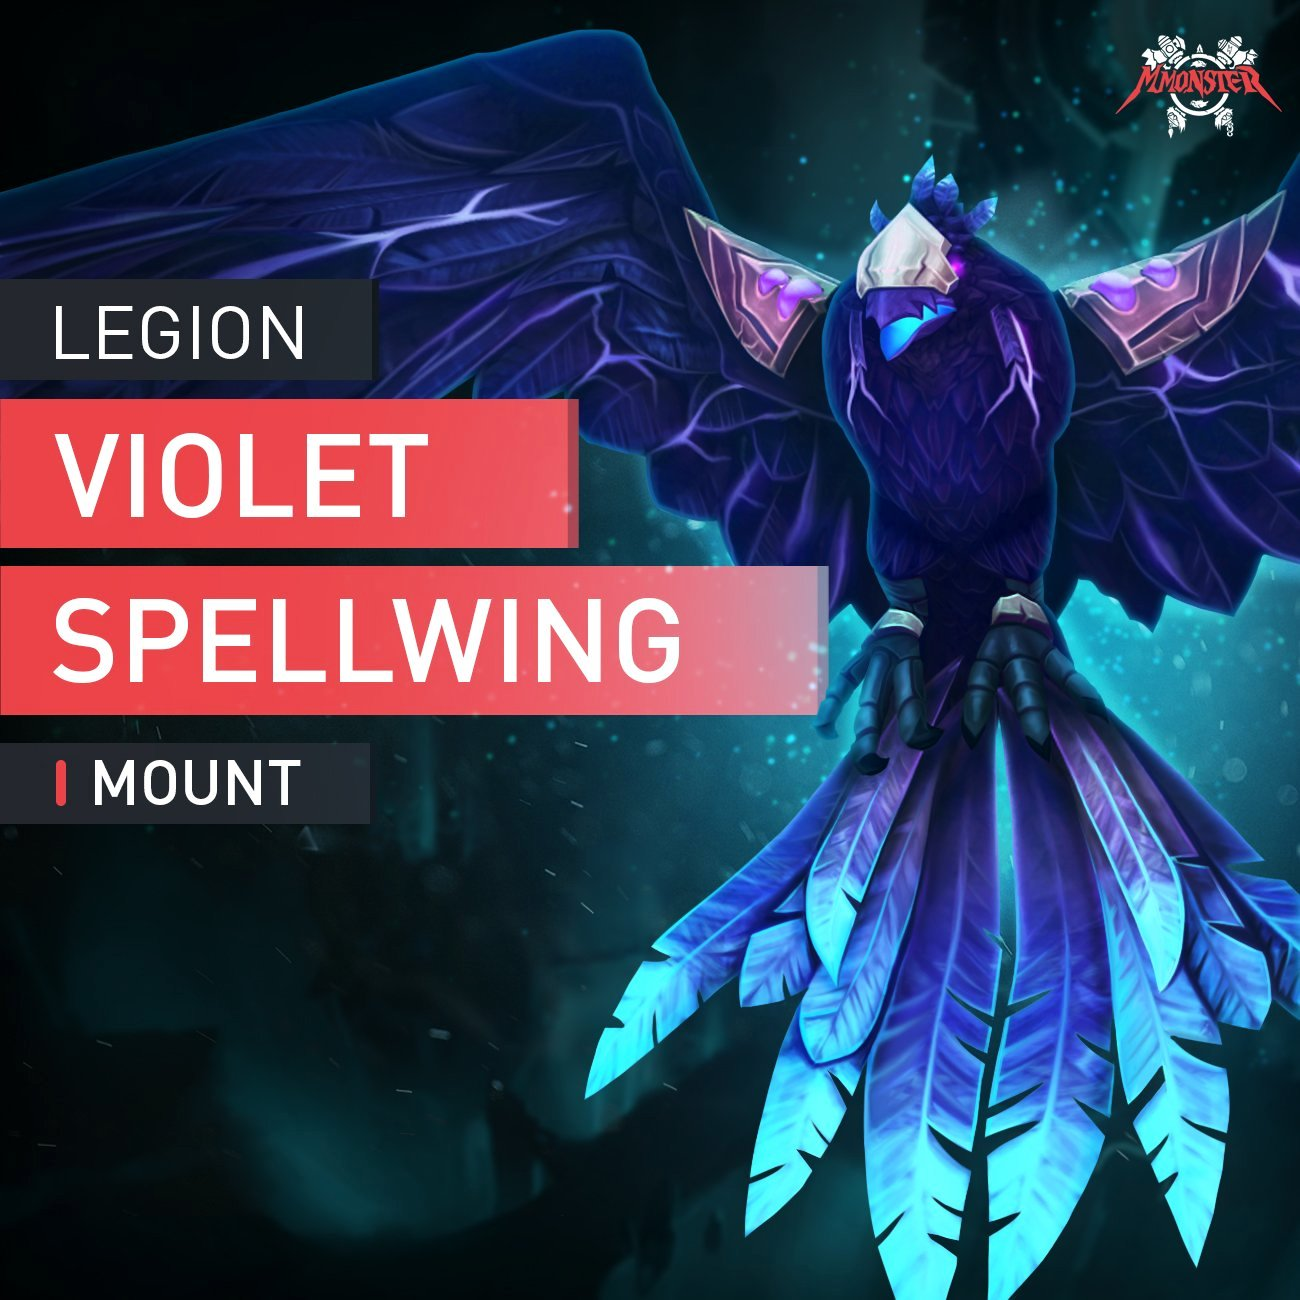 Violet Spellwing Mount